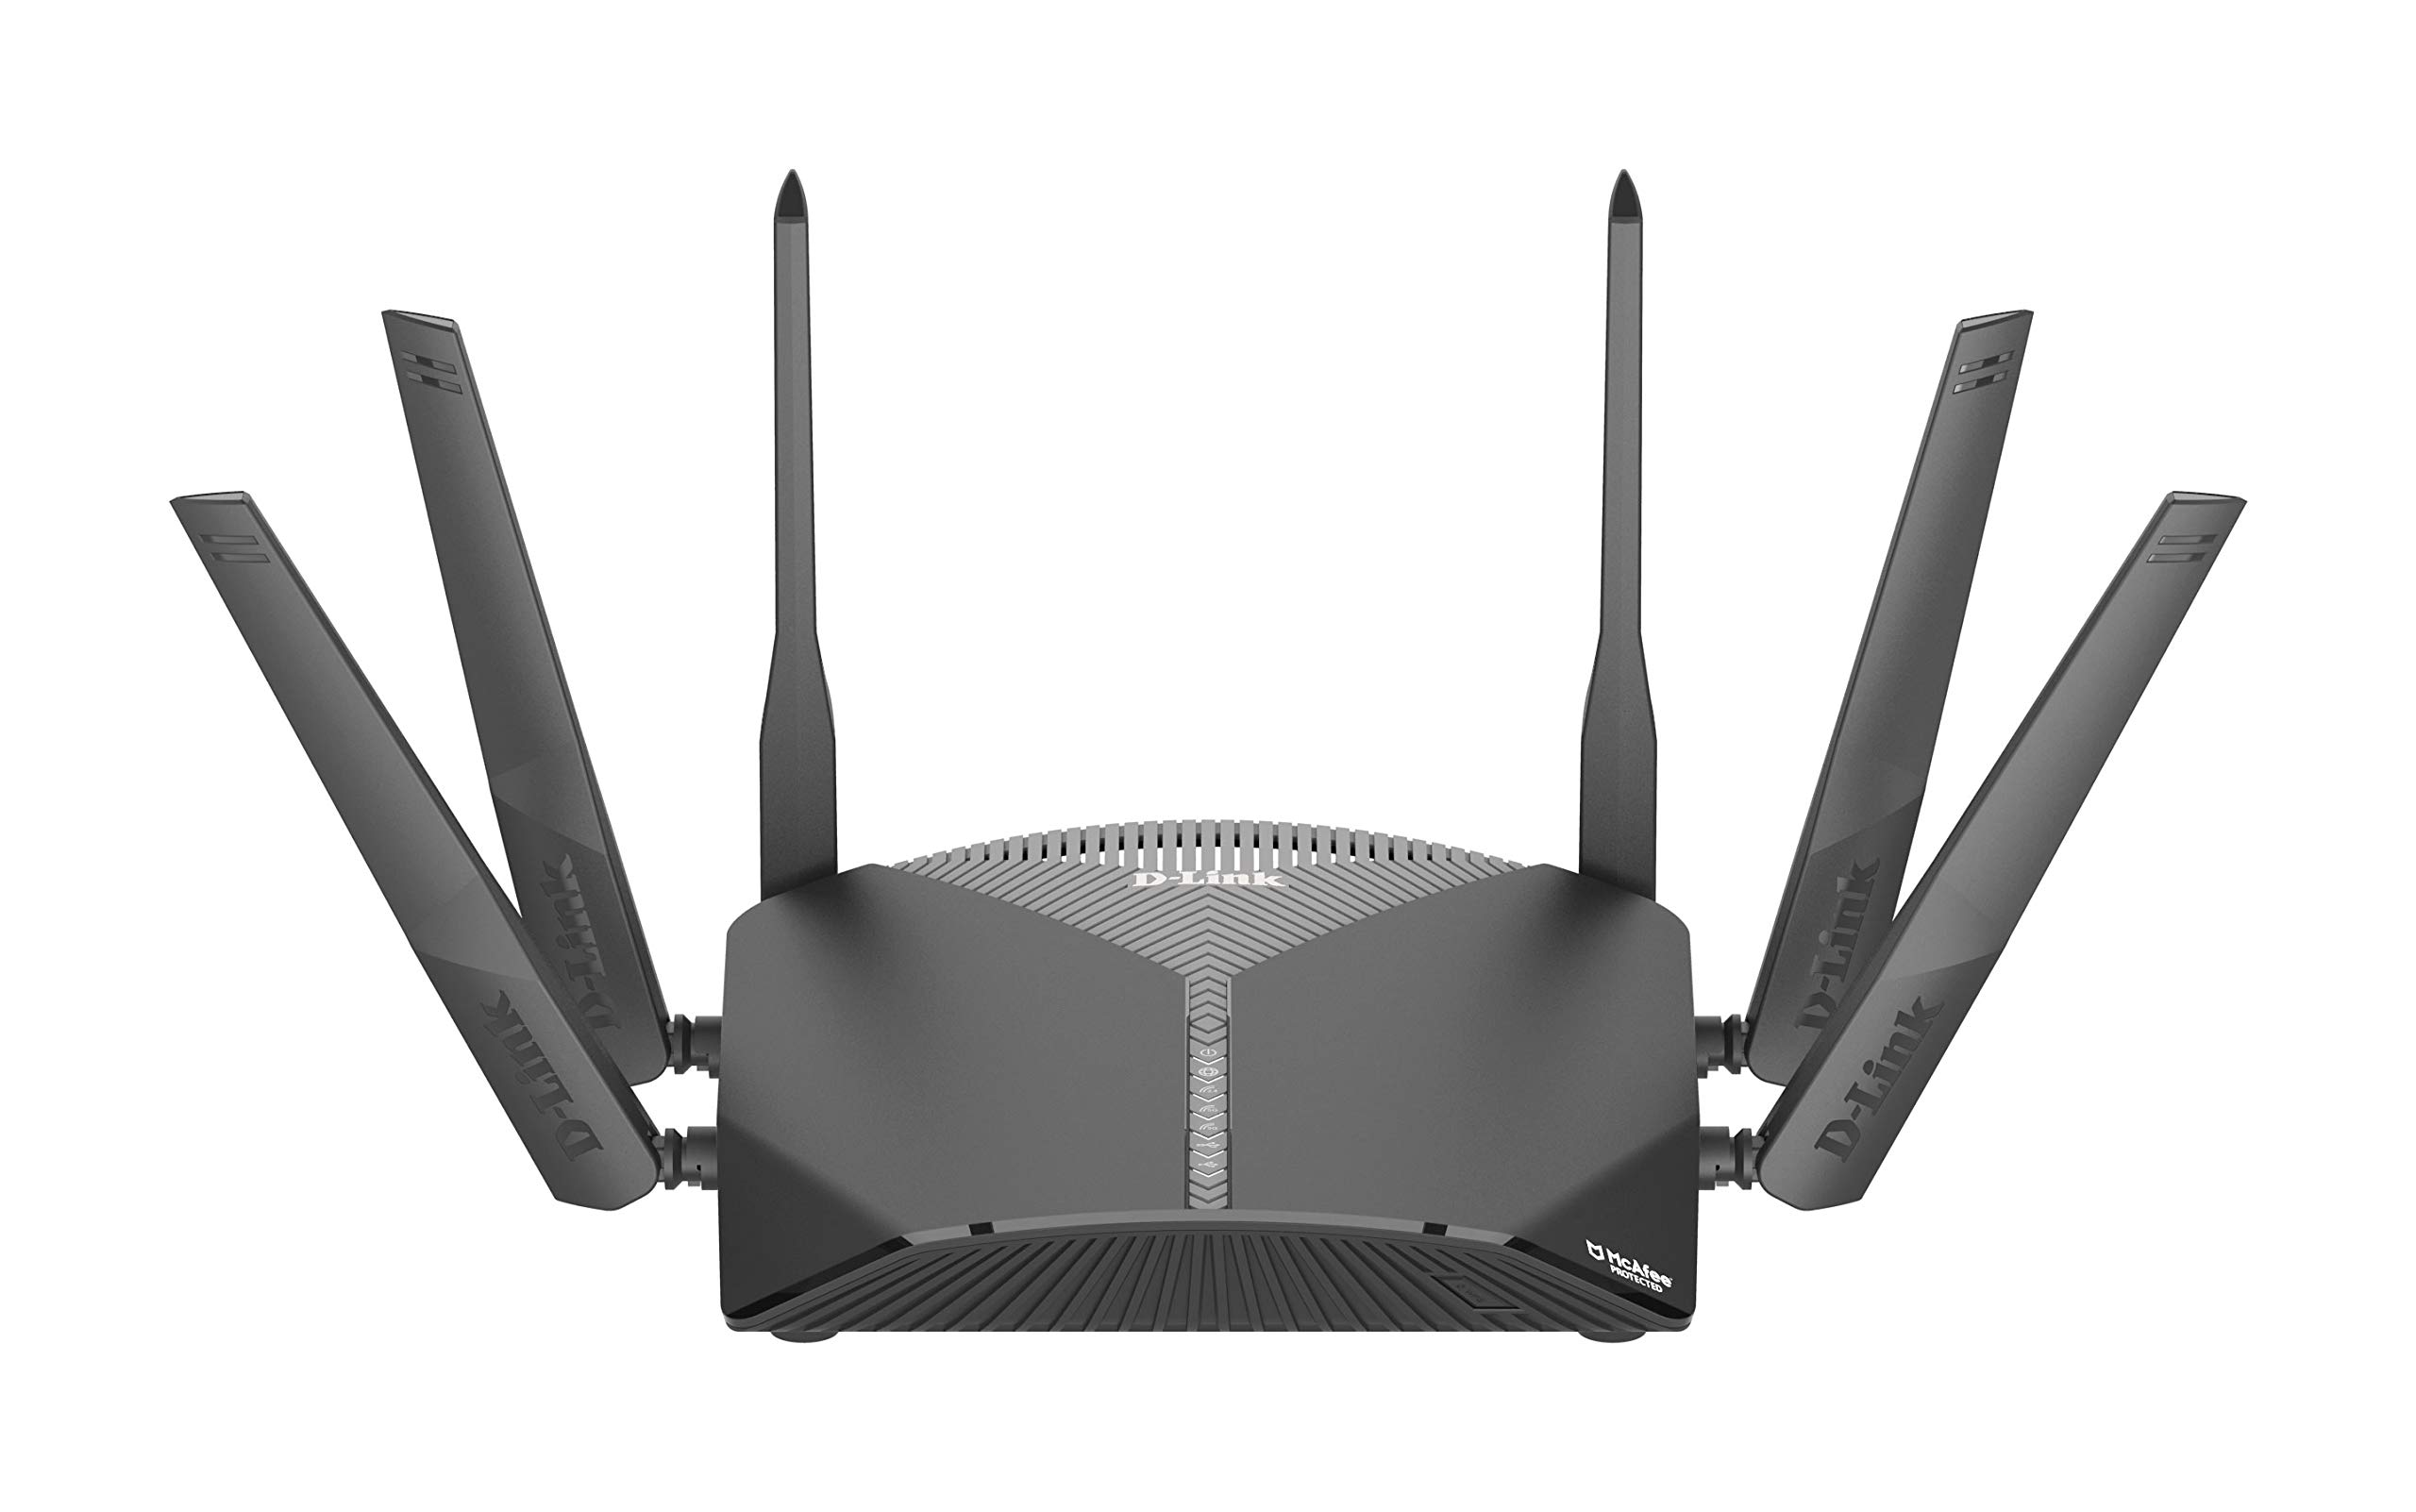 d-link-exo-mesh-wifi-router-ac3000-tri-band-smart-wireless-internet-for-home-dir-3060-us